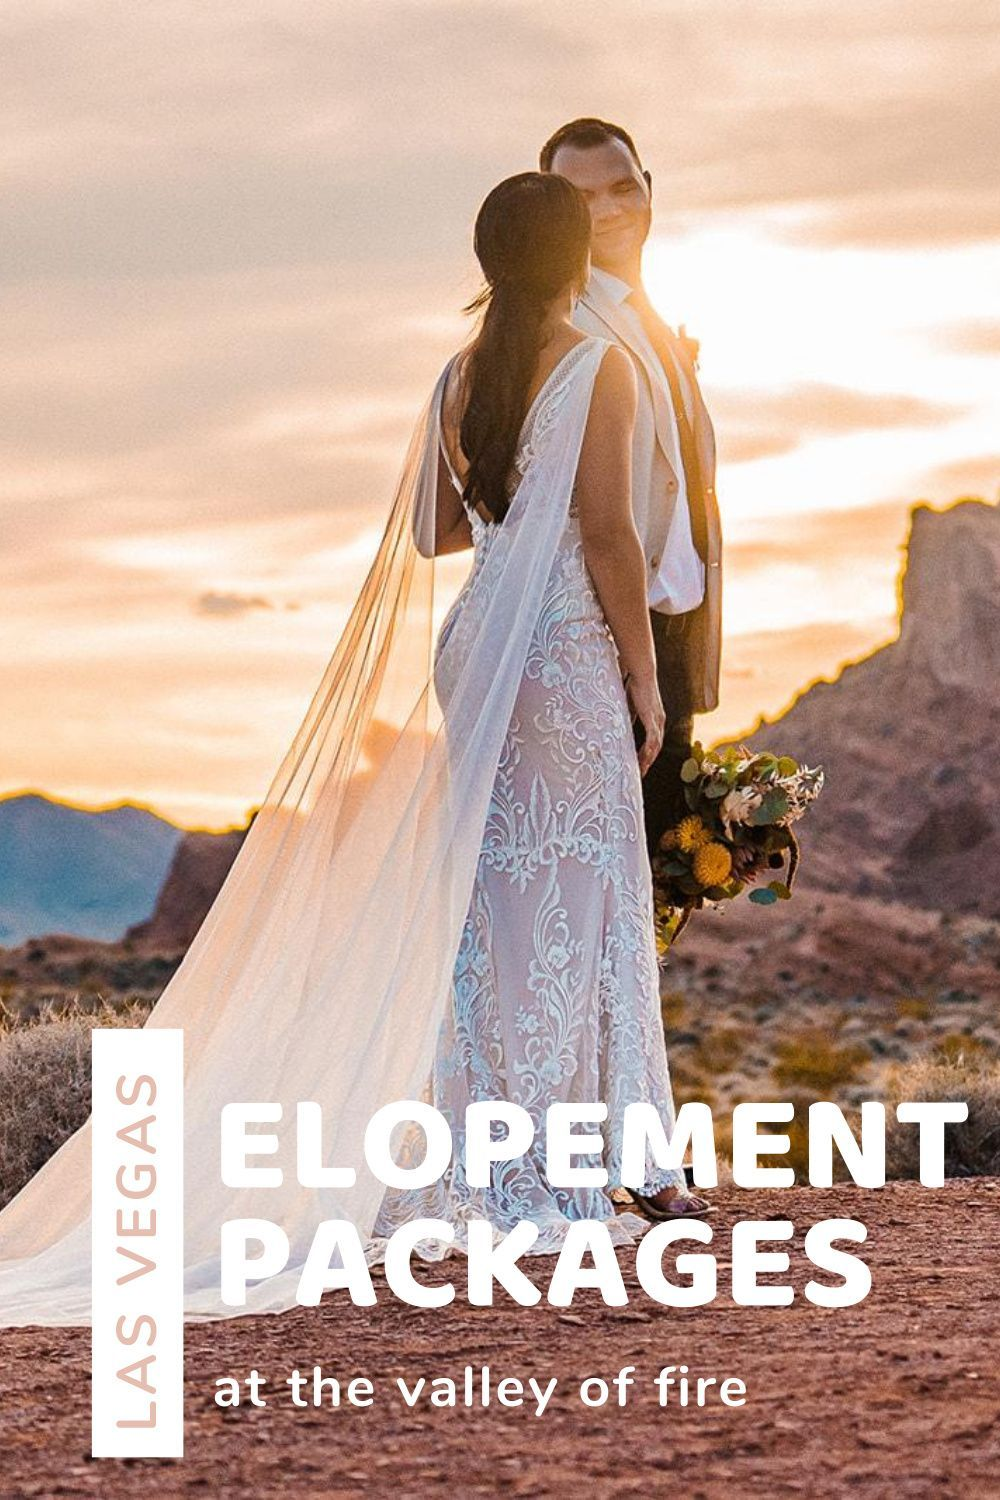 Valley Of Fire Elopement Packages In Las Vegas In 2020 Las Vegas Wedding Photography Las Vegas Wedding Venue Vegas Wedding Venue